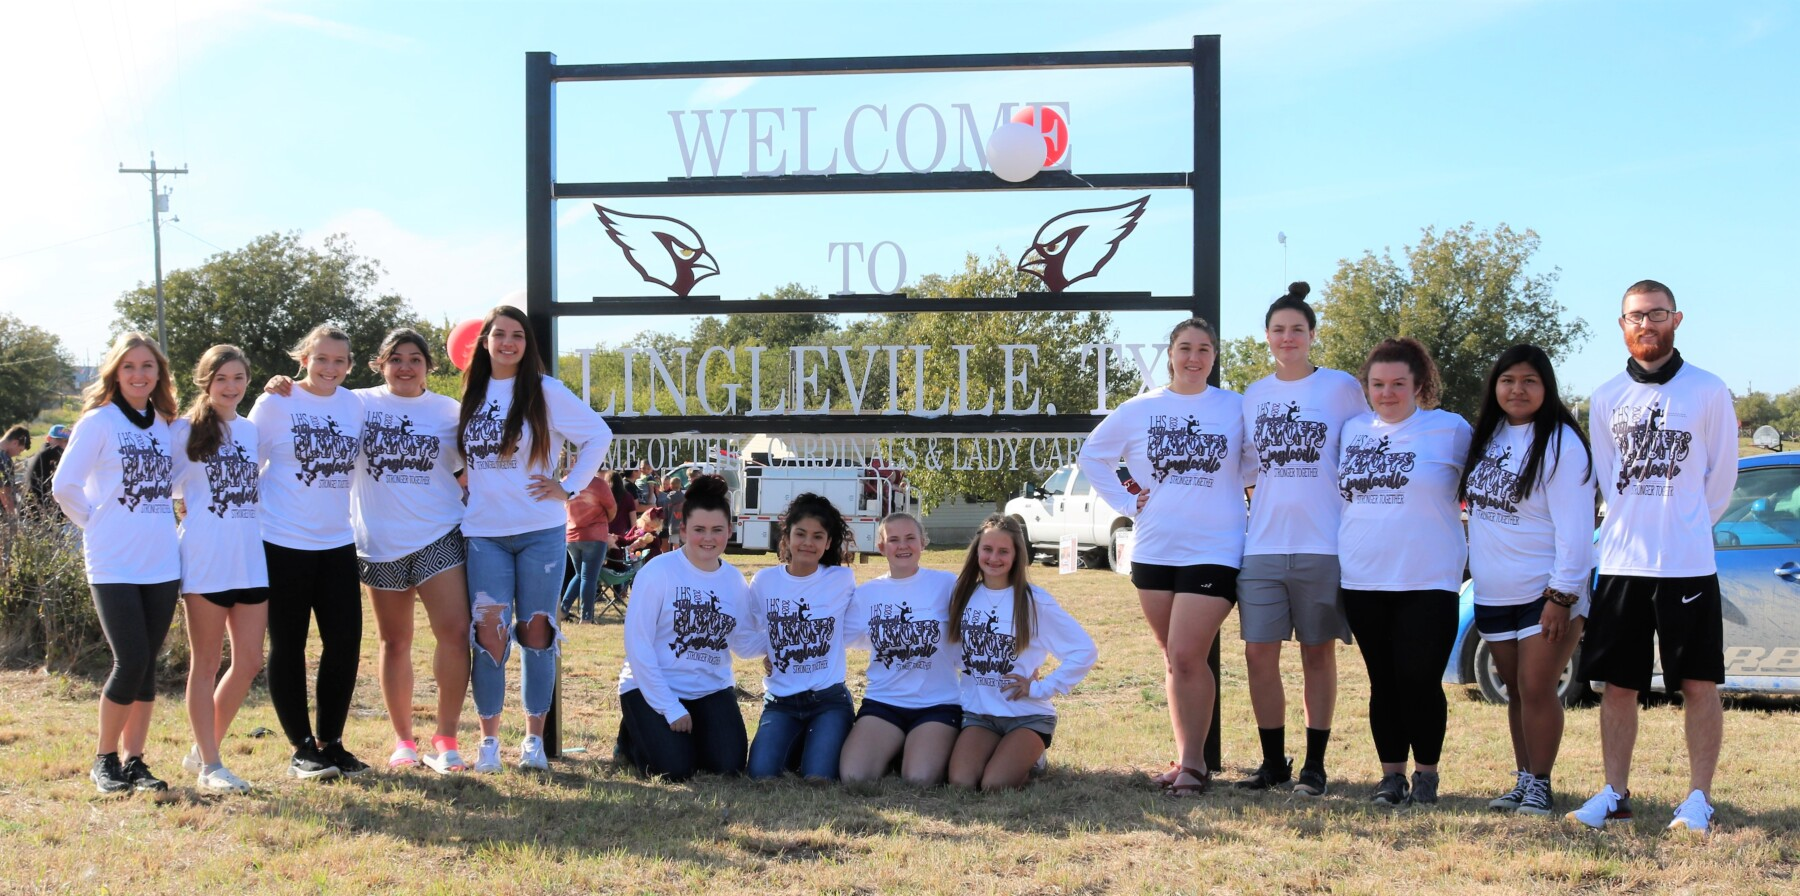 Lingleville Send off 1 Lady Cardinals 2020 Volleyball team